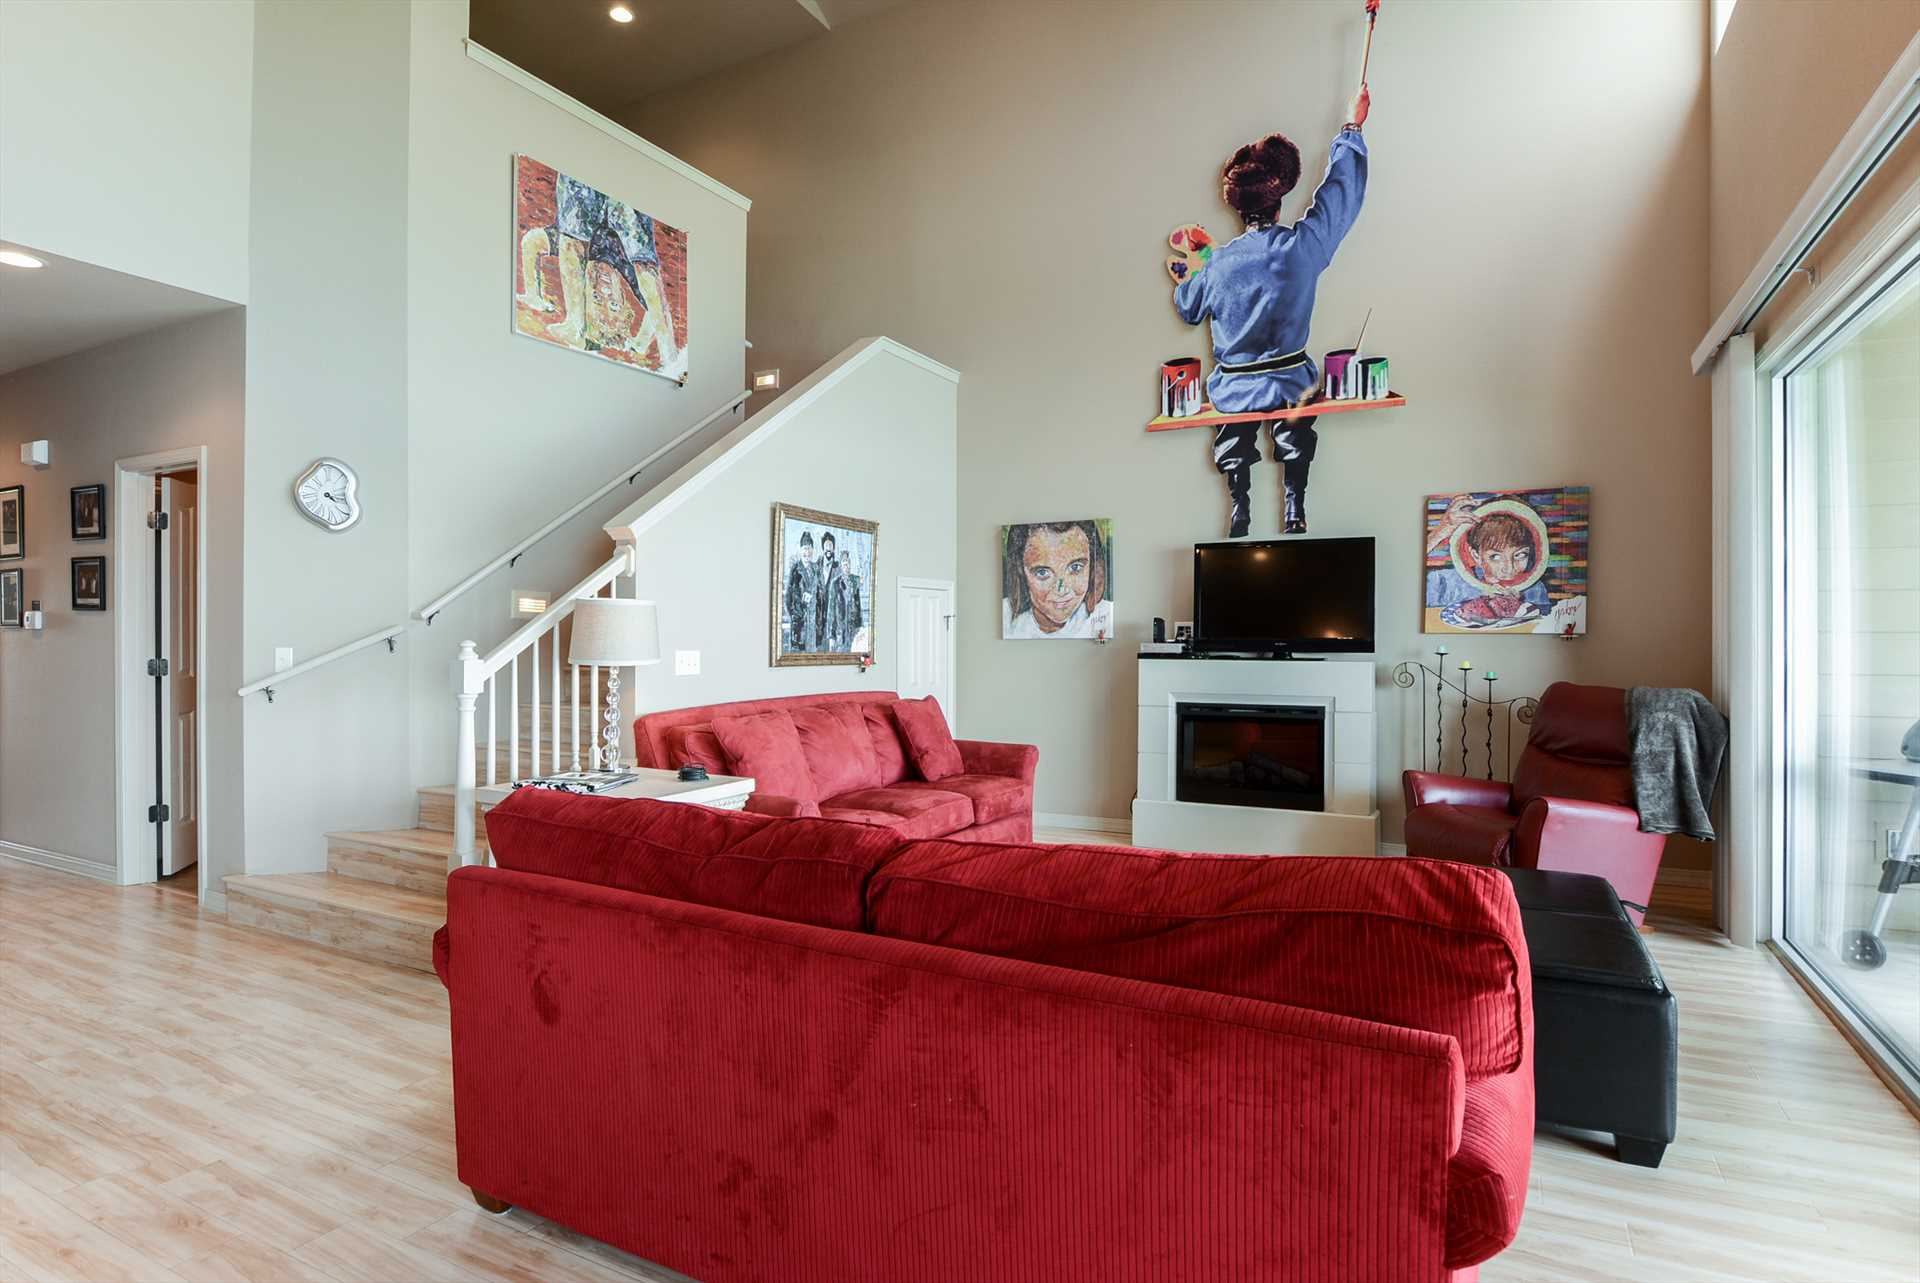 Unique art makes this living area a fun place to entertain f